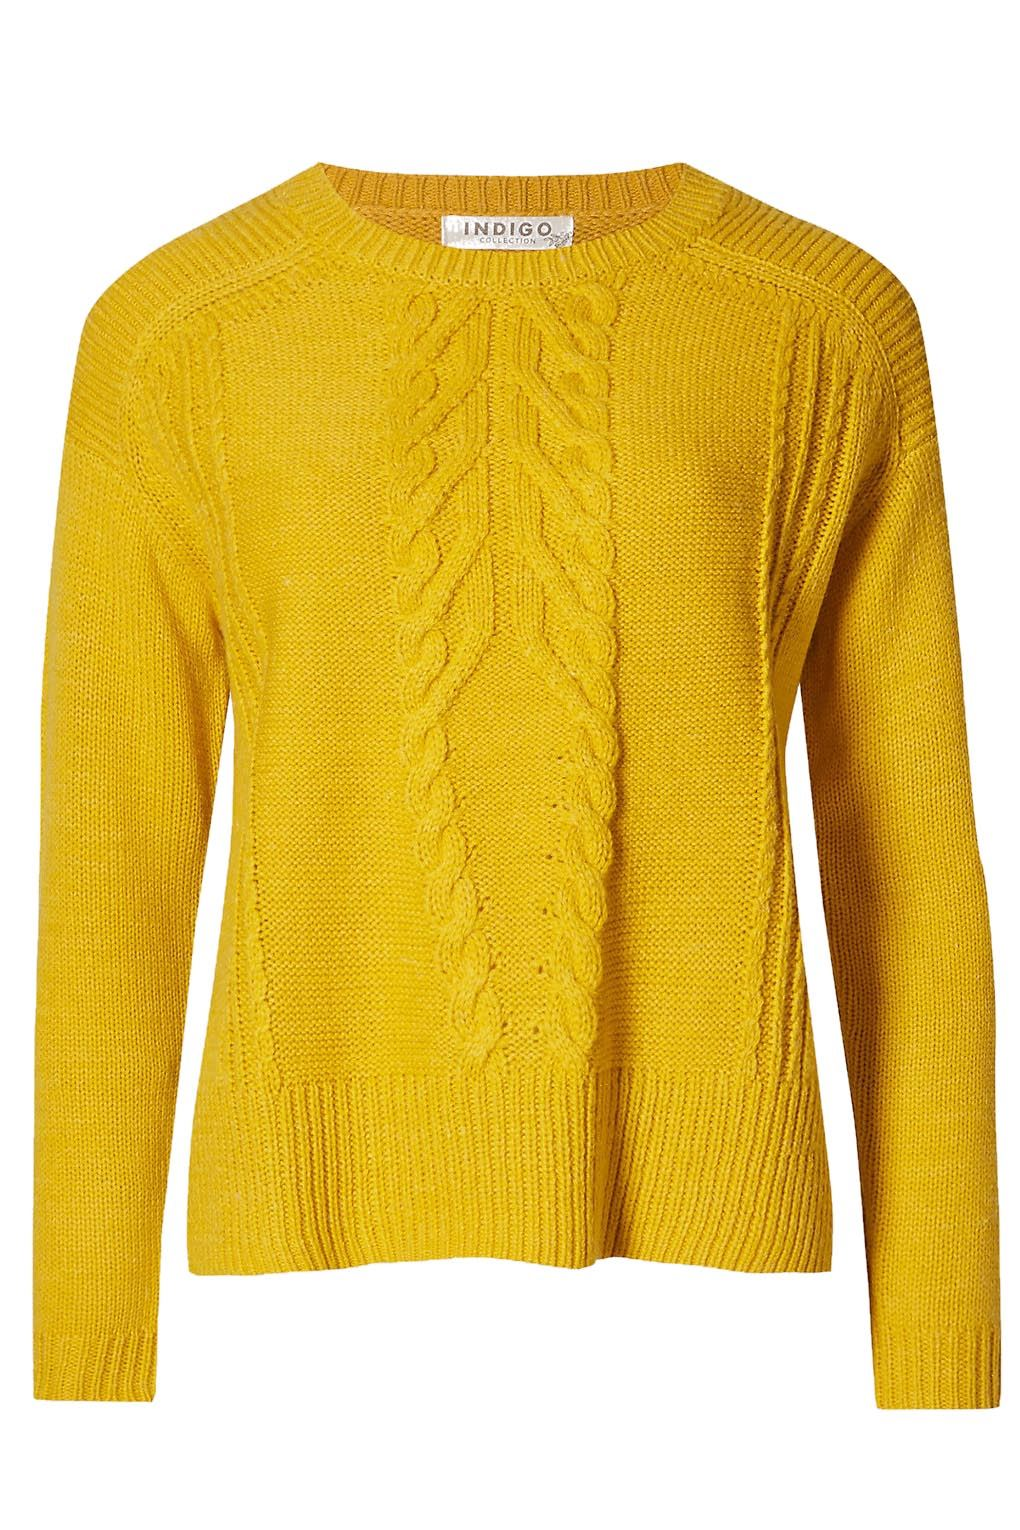 M/&S Ochre Yellow Womens Plus Size Cable Knit Jumper Side Splits RRP £30